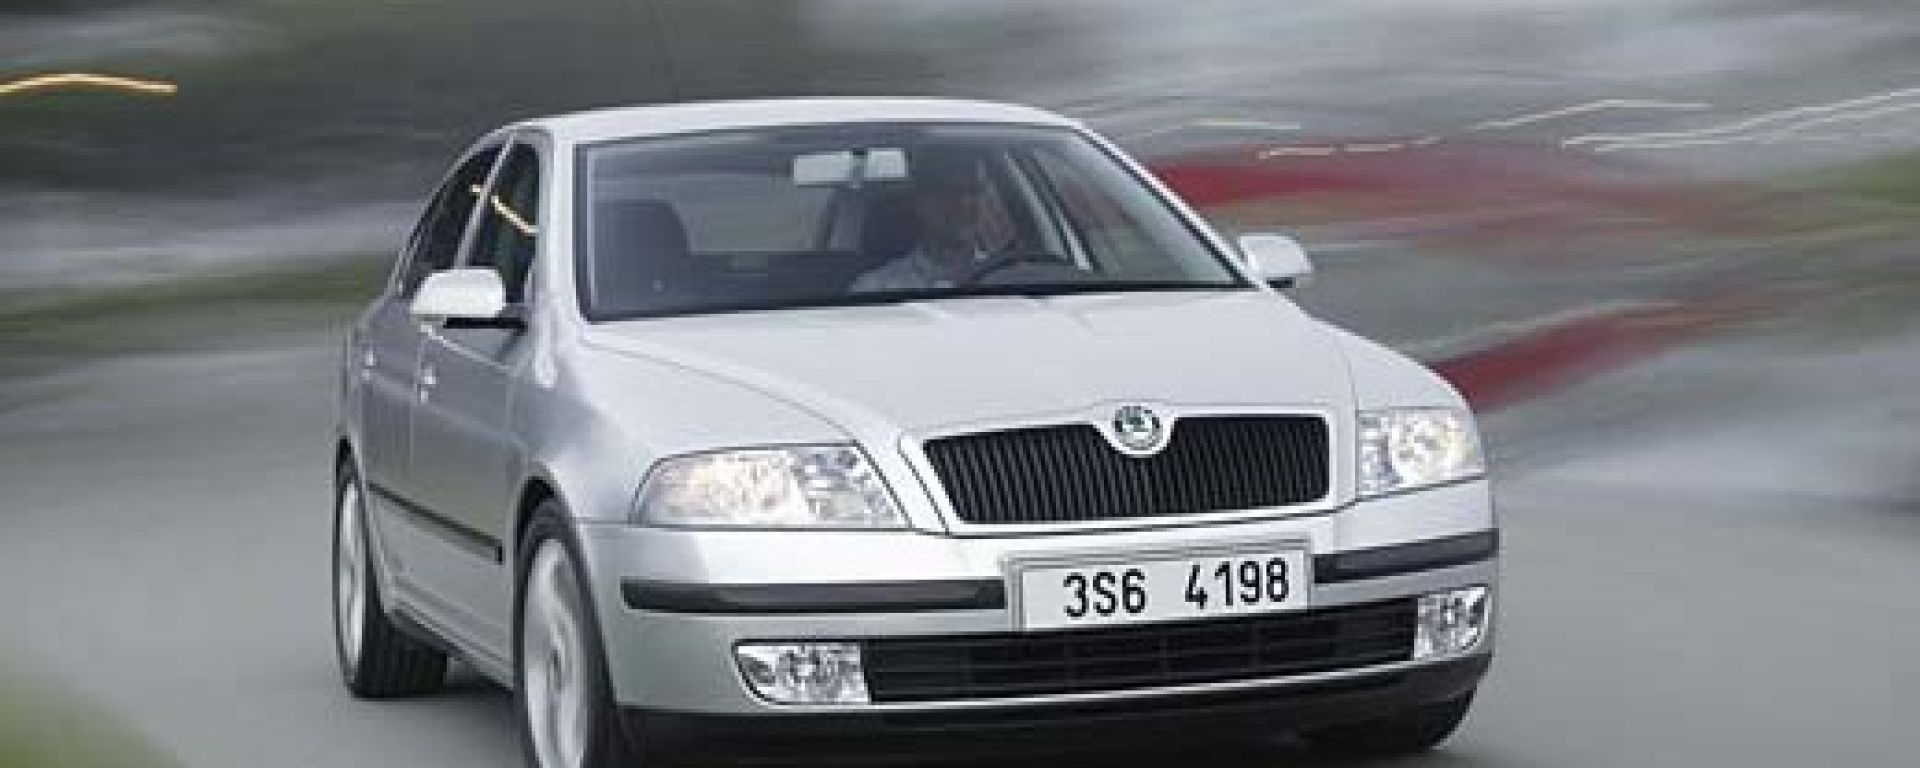 Crash test: Skoda Octavia